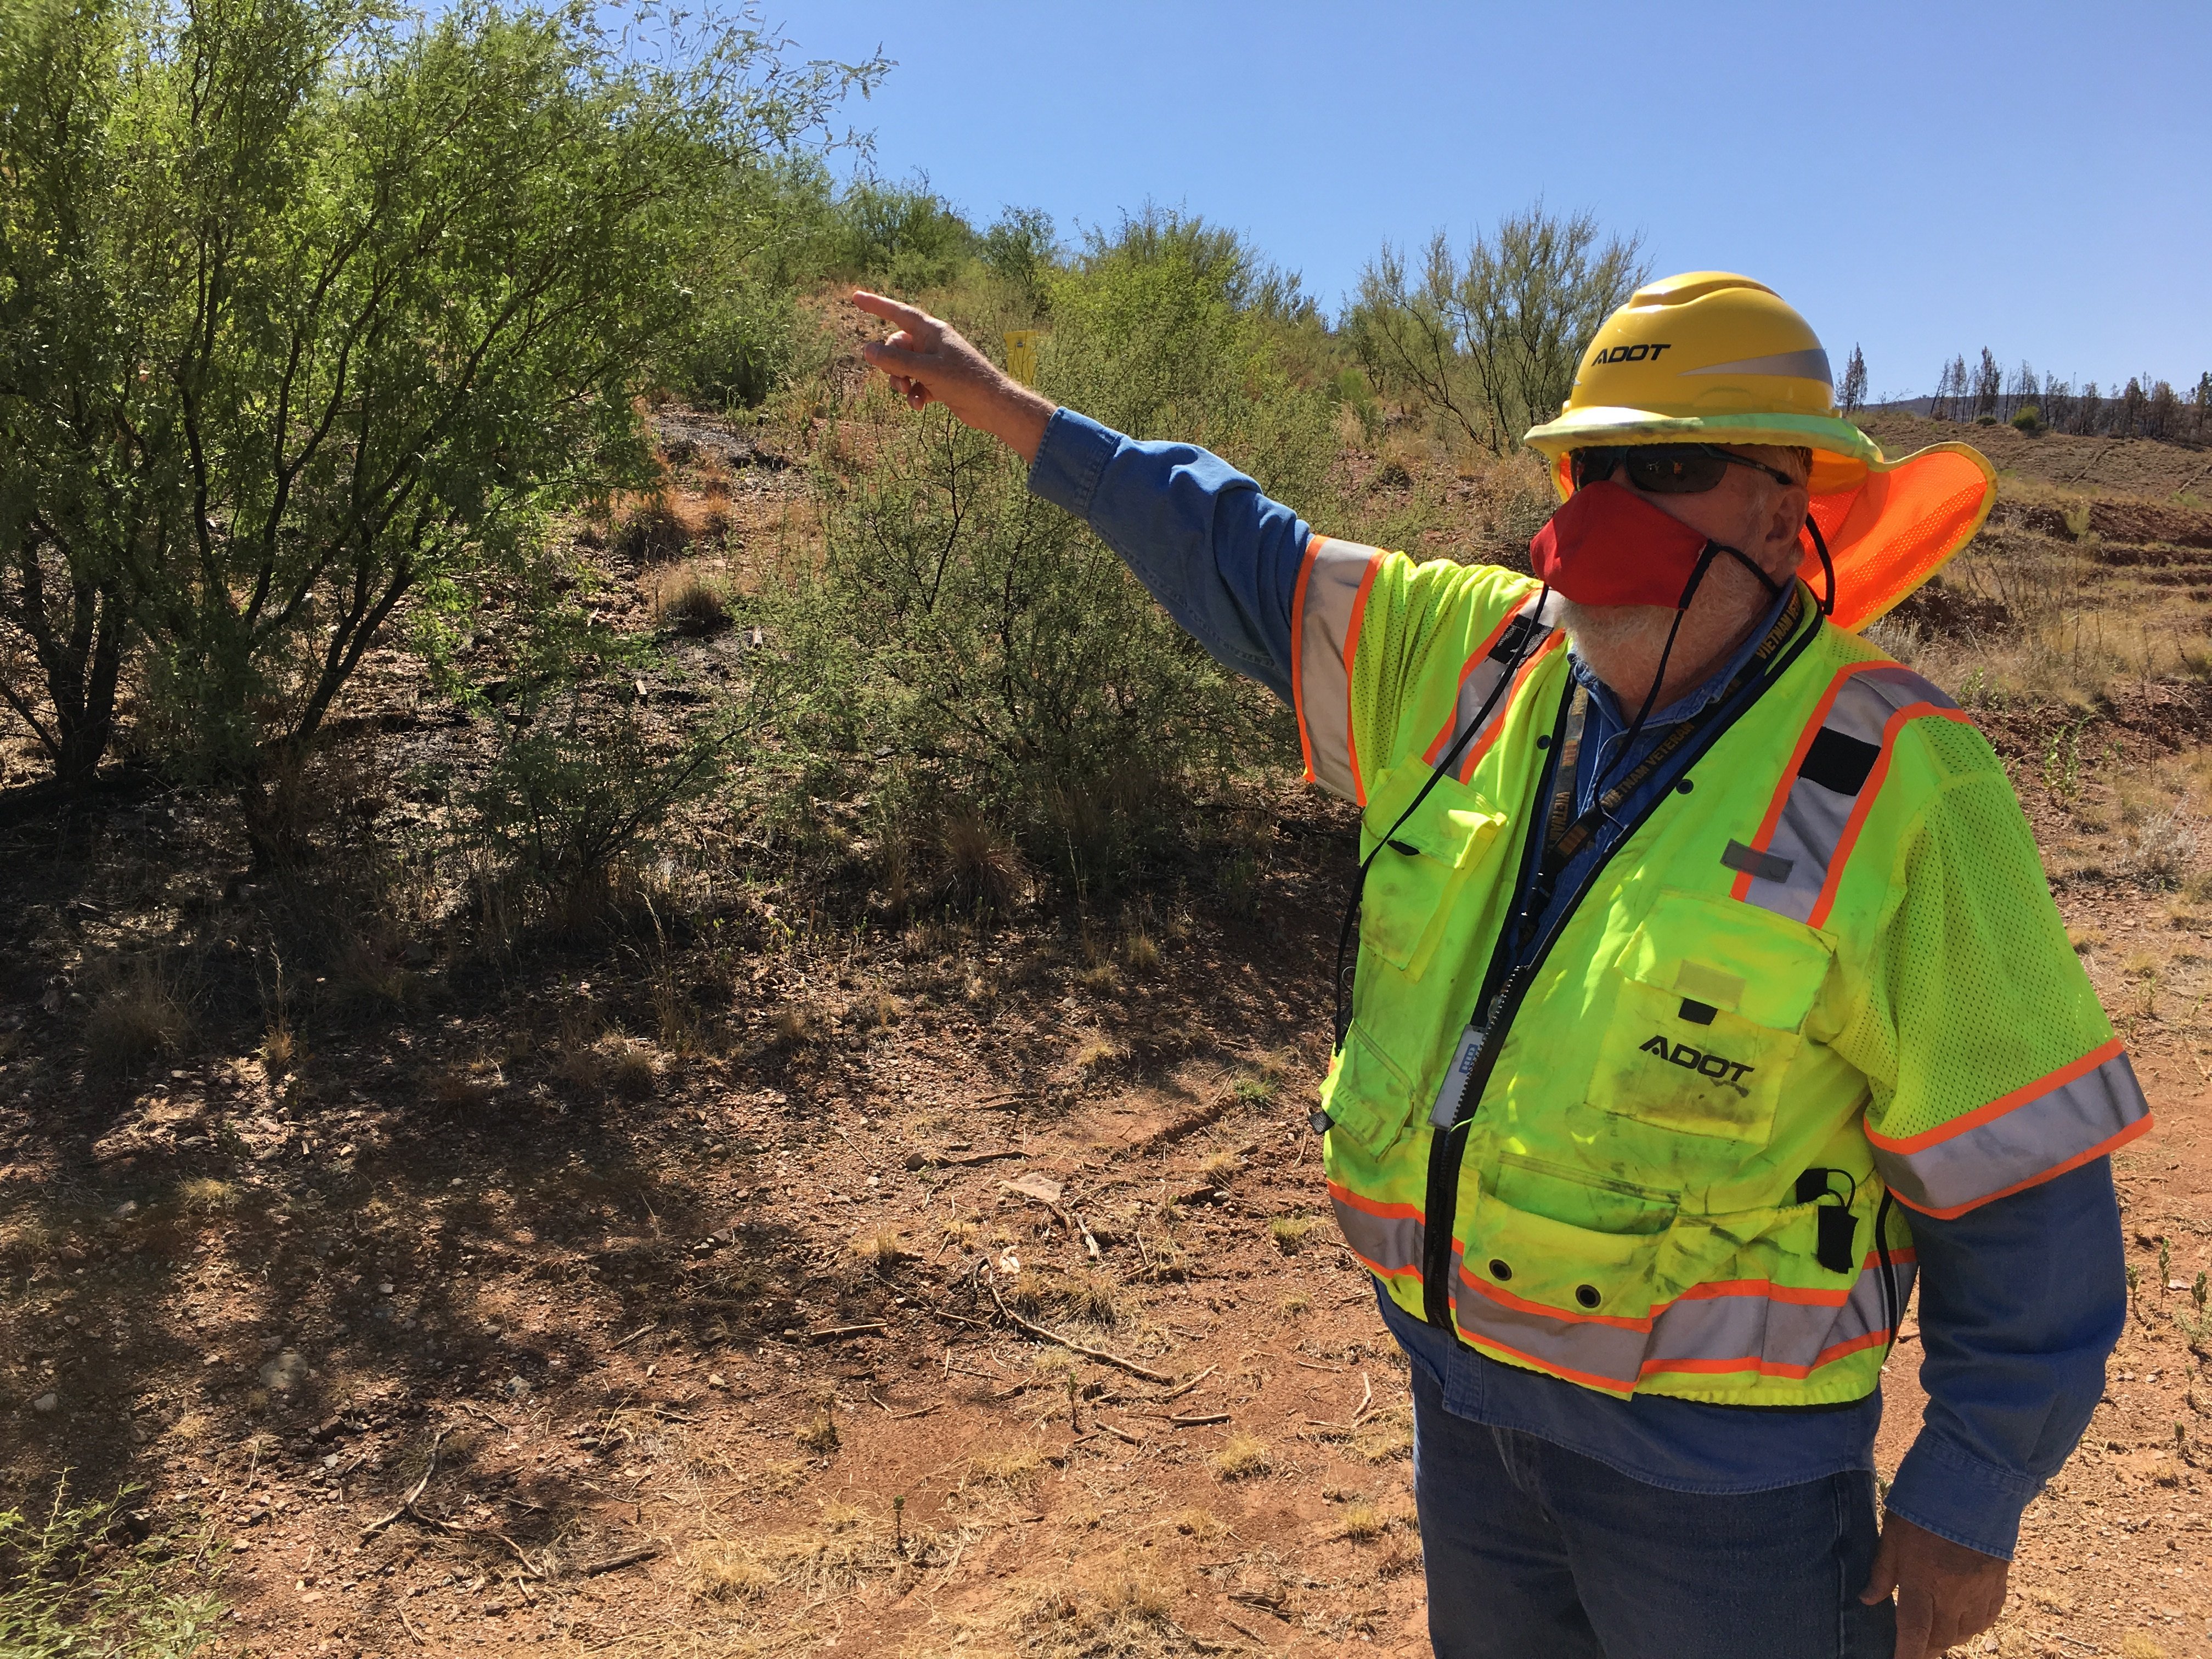 ADOT Geologist James Lemmon